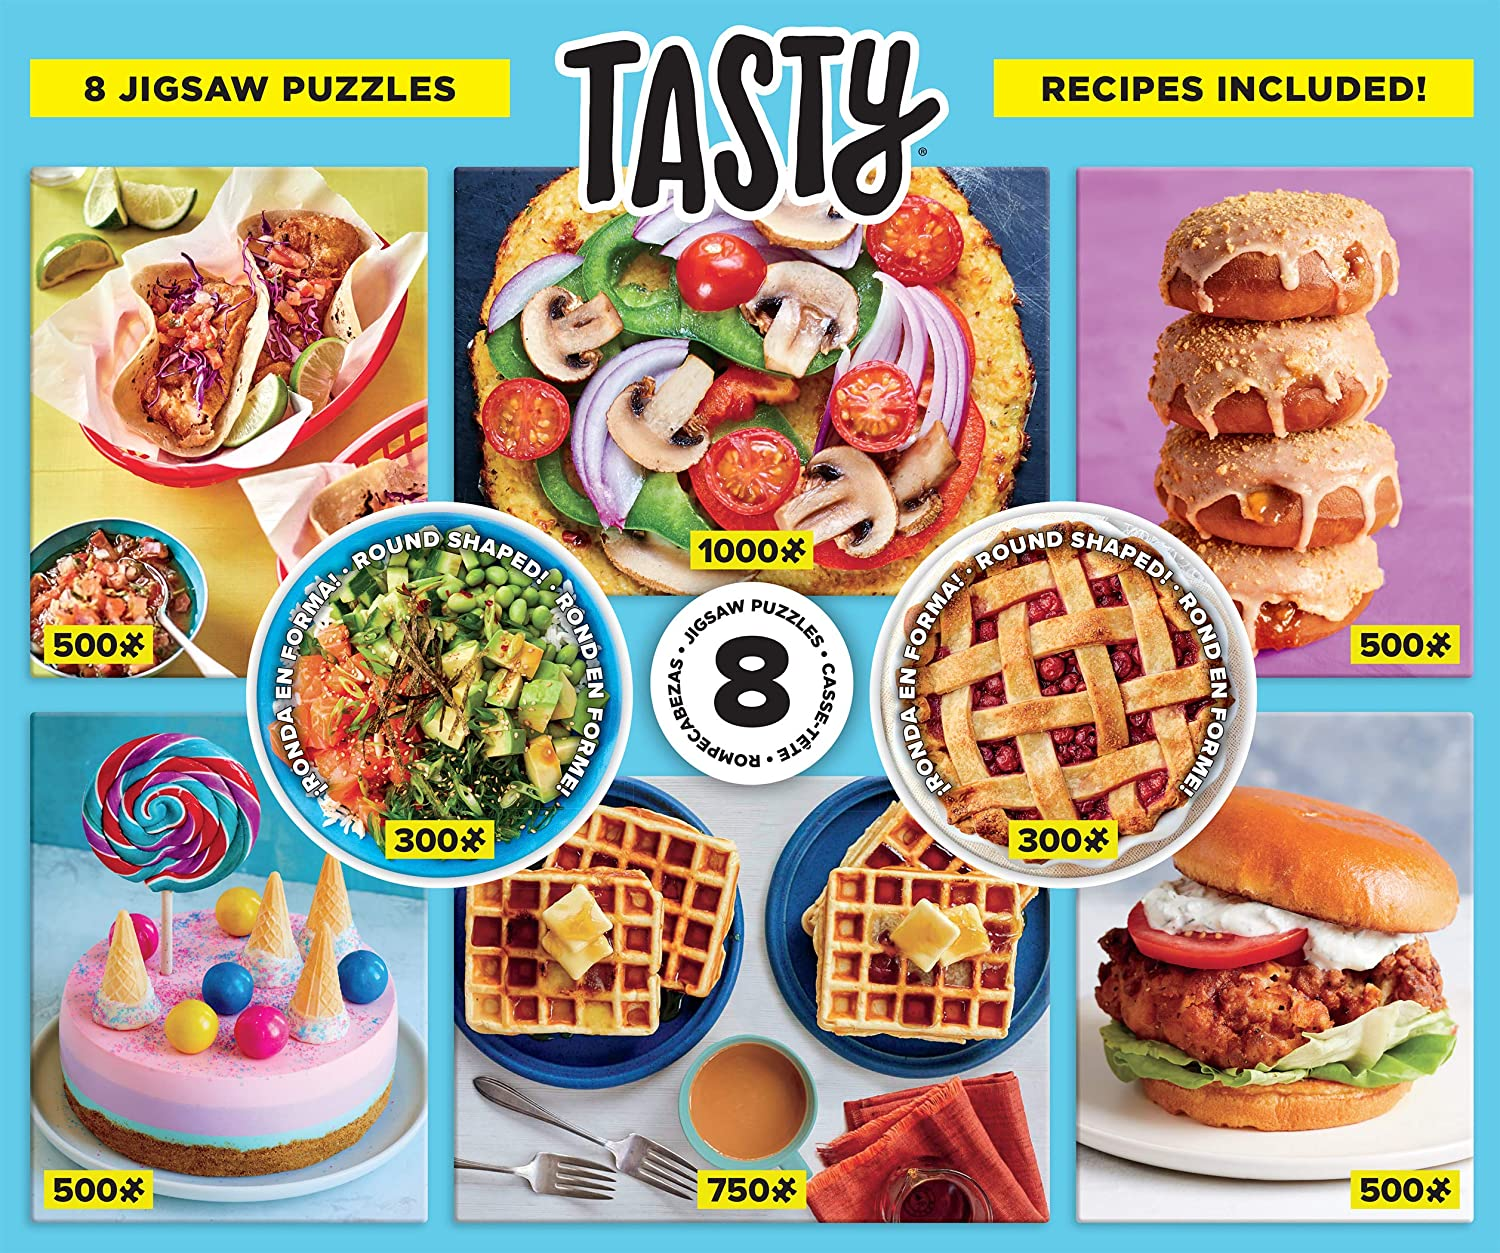 Ceaco - Tasty 8 in 1 Multipack Jigsaw Puzzle Bundle Set - (2) Round 300, (4) 550, (1) 750, (1) 1000 Pieces, Kids and Adults